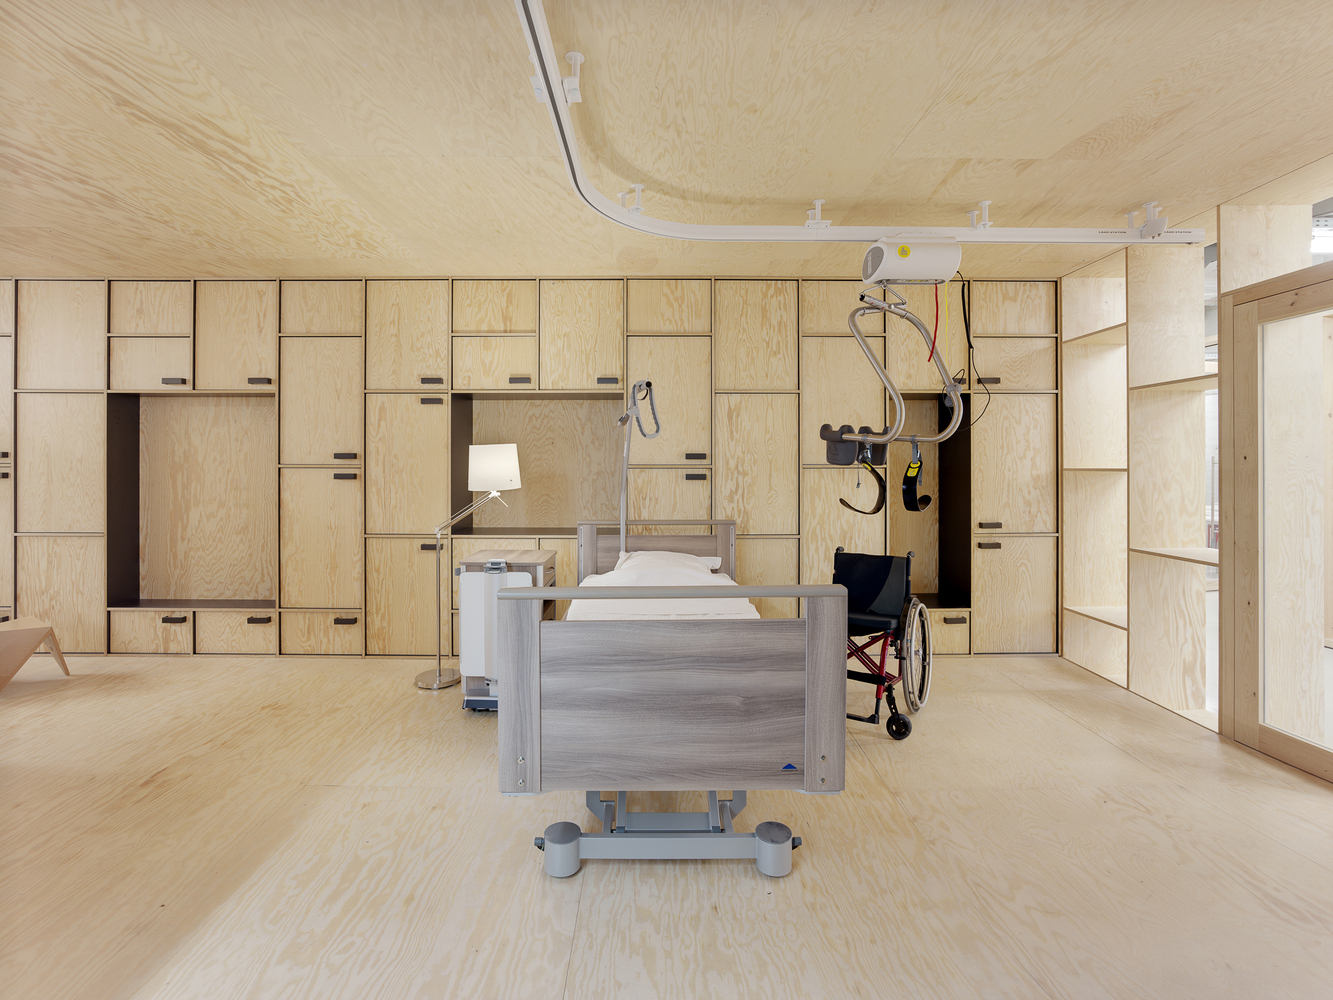 Waiting Rooms, Reception Areas, & Courtyards: 43 Notable Examples of Hospital Architecture